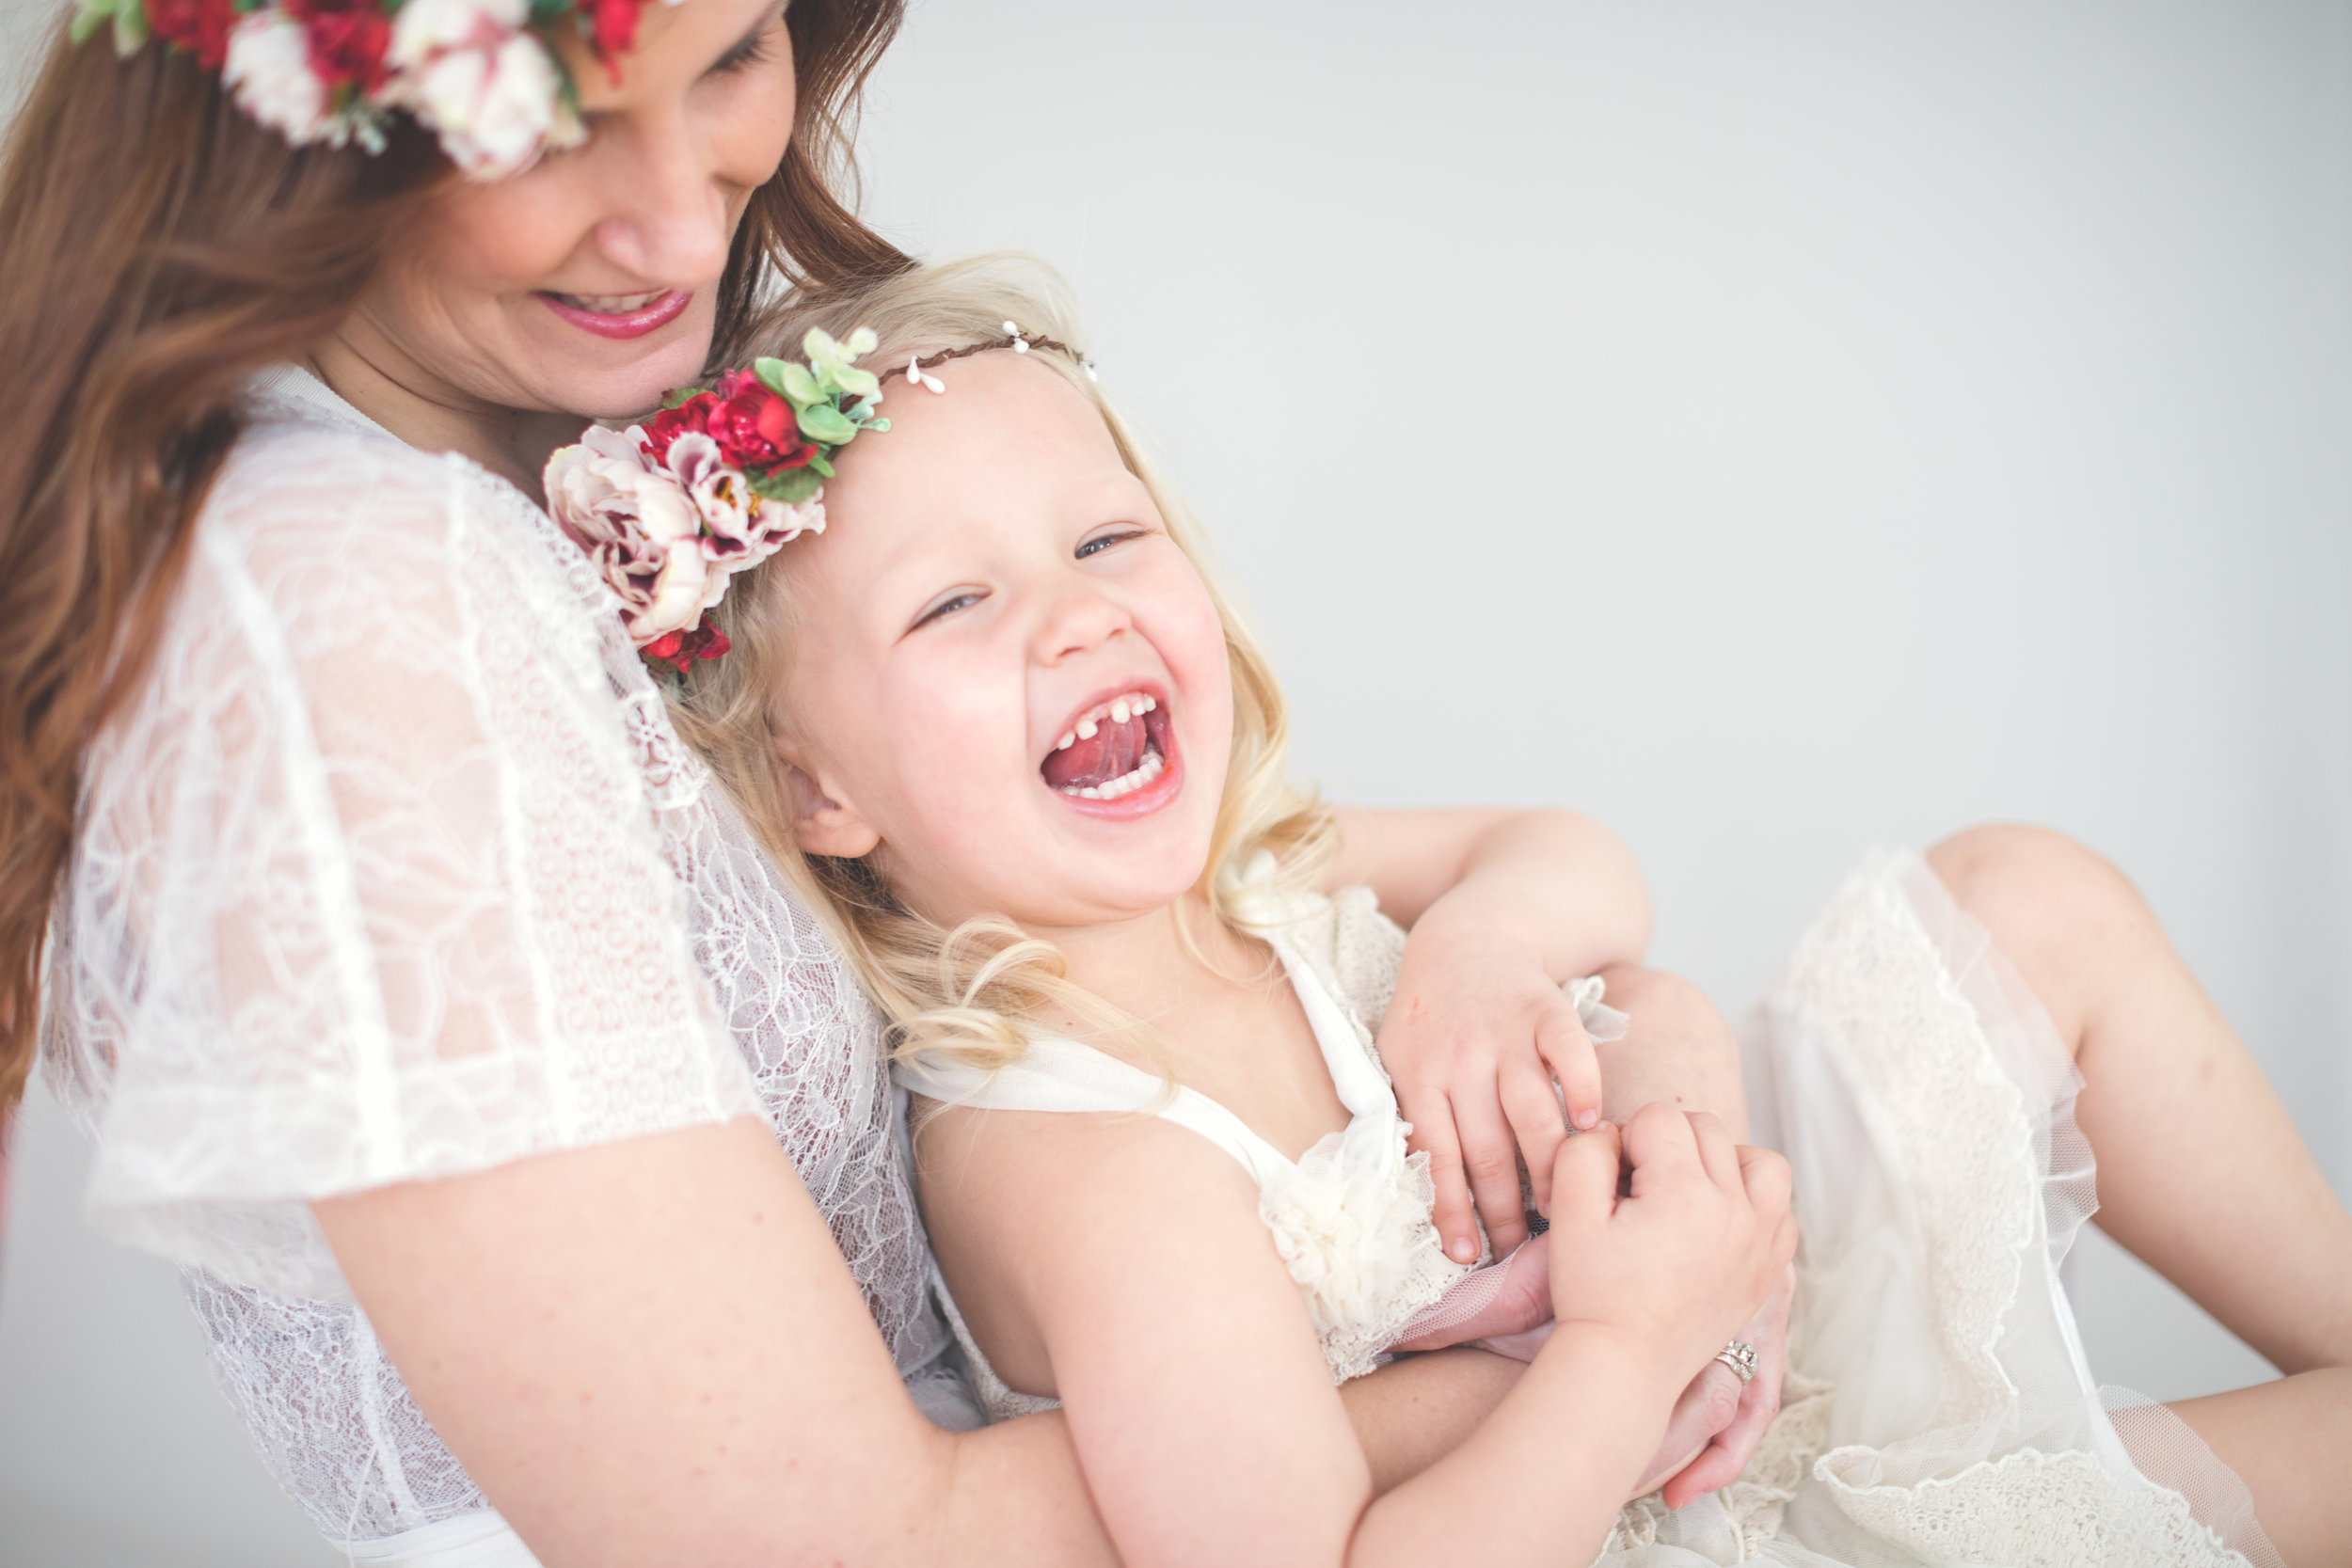 Flower crown sessions for Mother's Day. Motherhood photos. Mother daughter portrait session.